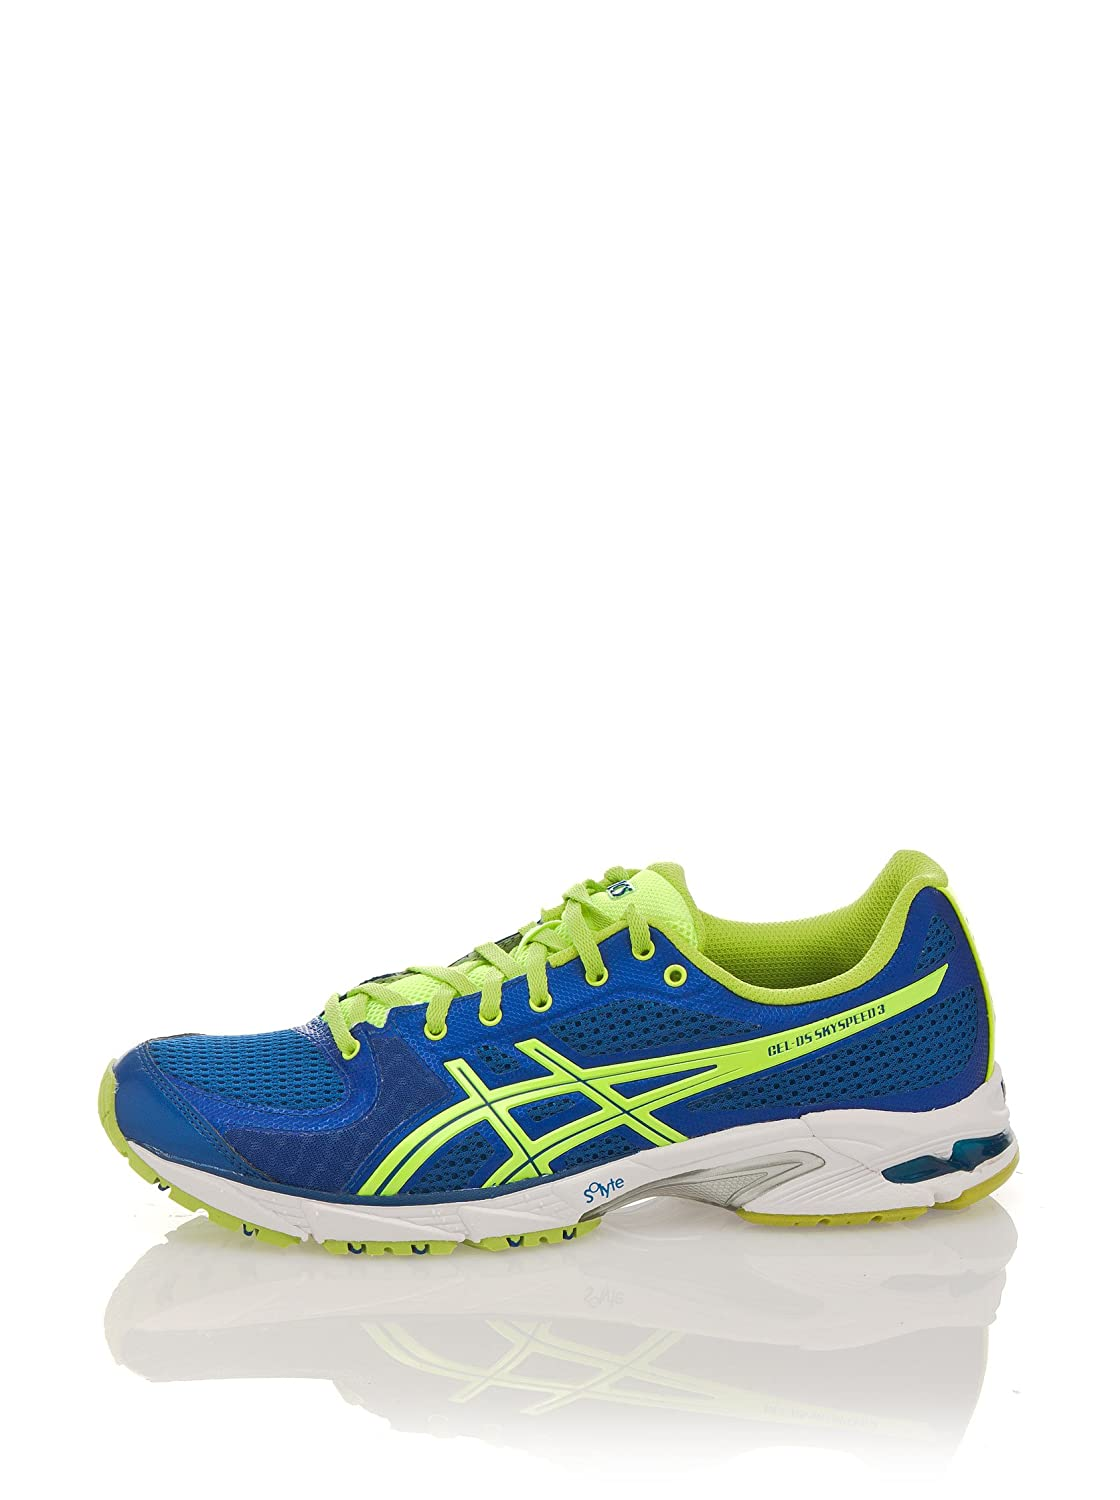 Asics GEL DS SKY SPEED 3: Características Zapatillas